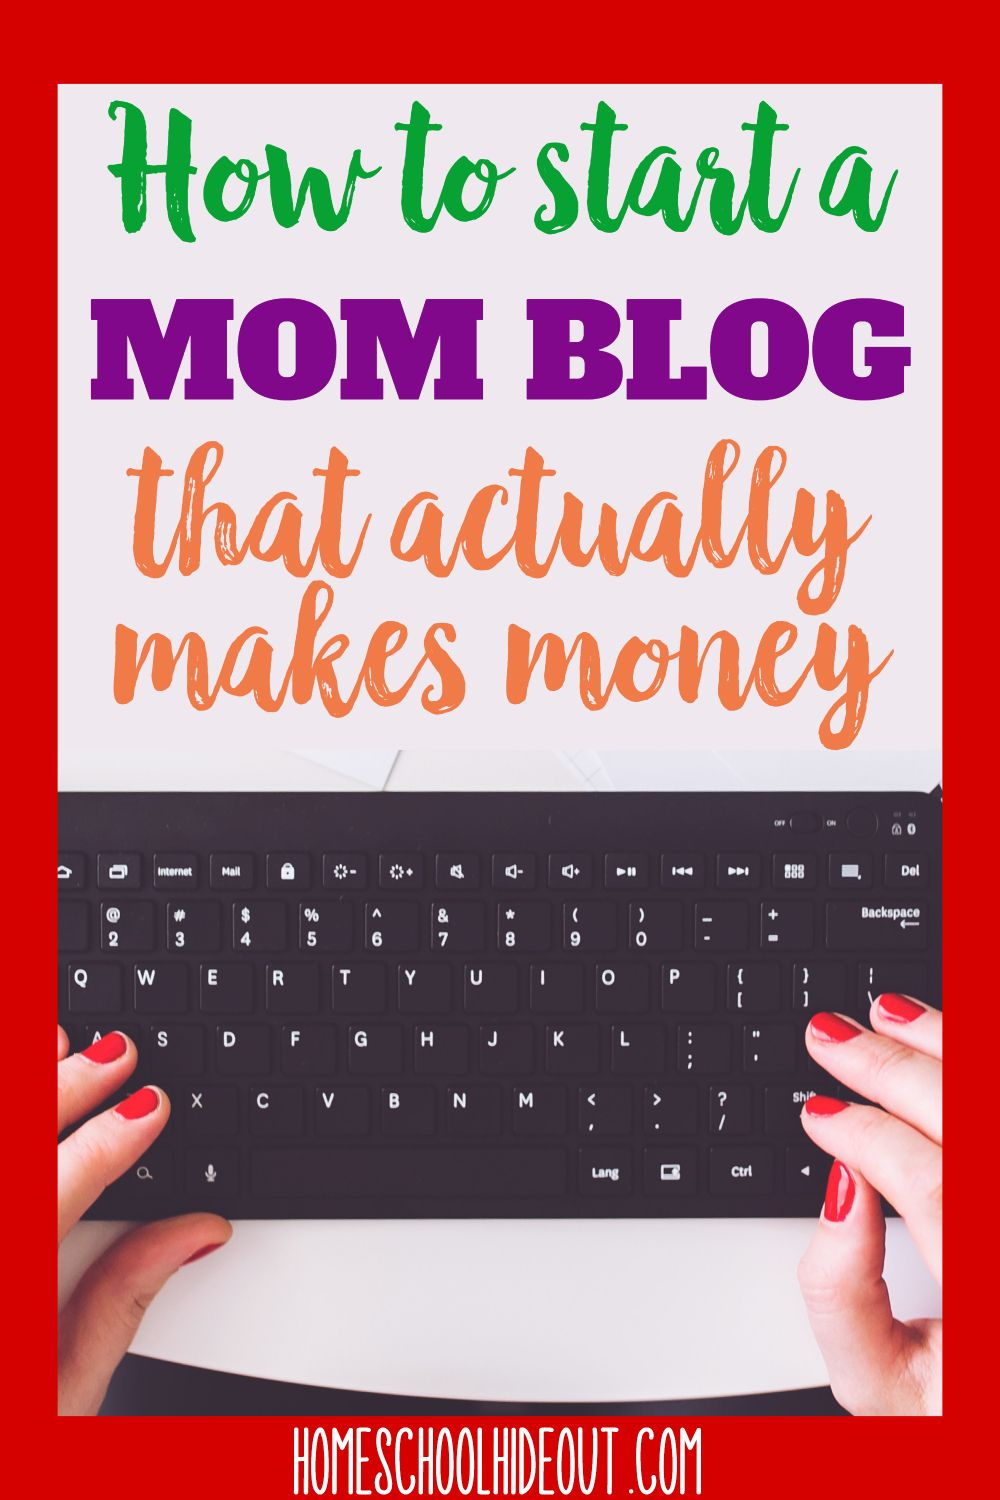 How to Start a Mom Blog and Make an Income - Homeschool Hideout Want to start a mom blog? We've got eveything you need in just 8 simple steps!